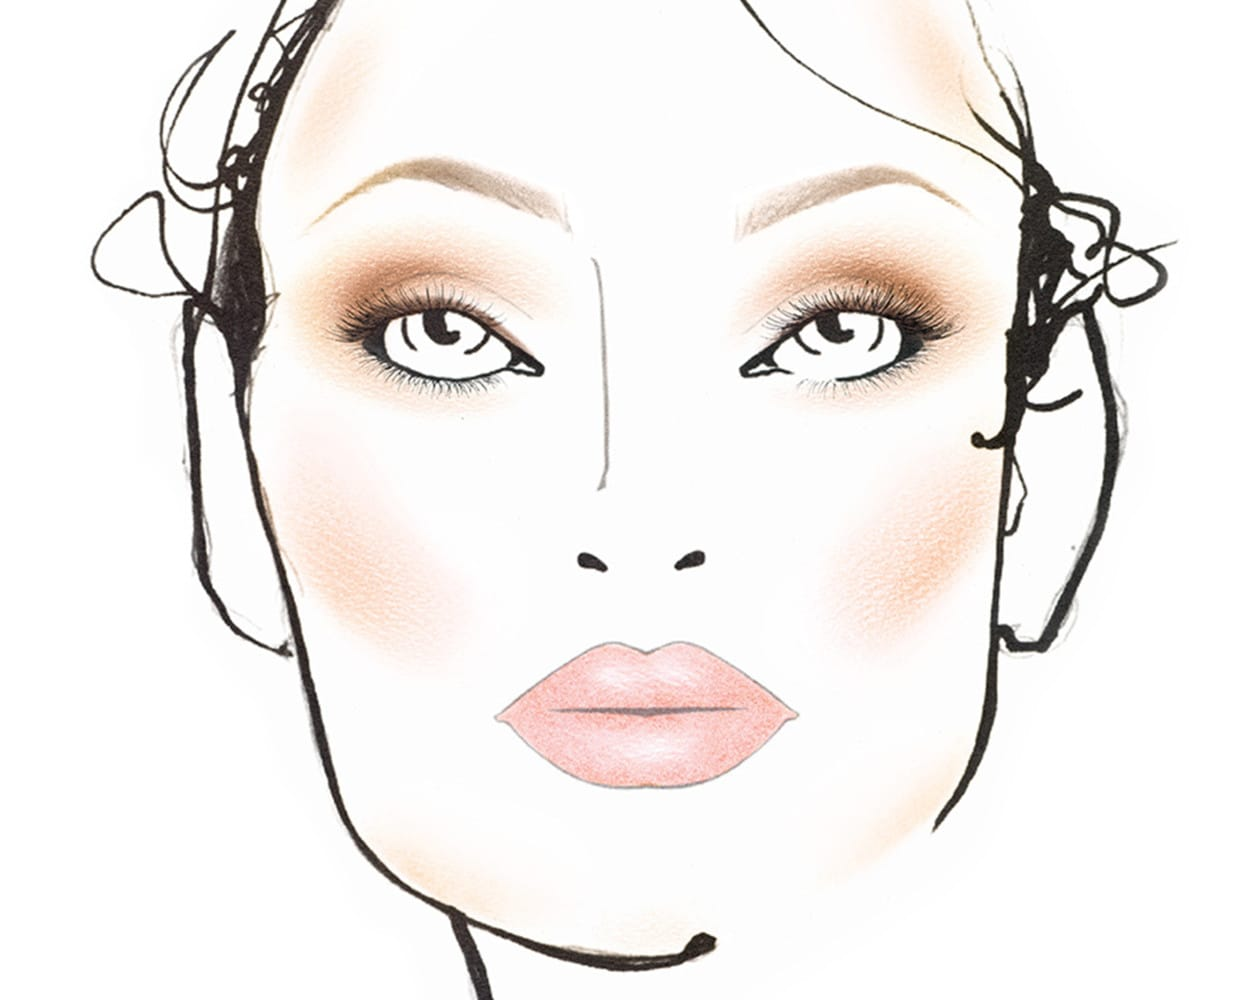 Offering more than shades of professional quality cosmetics for All Ages, All Races, and All Genders. Enjoy free shipping and returns on all orders.